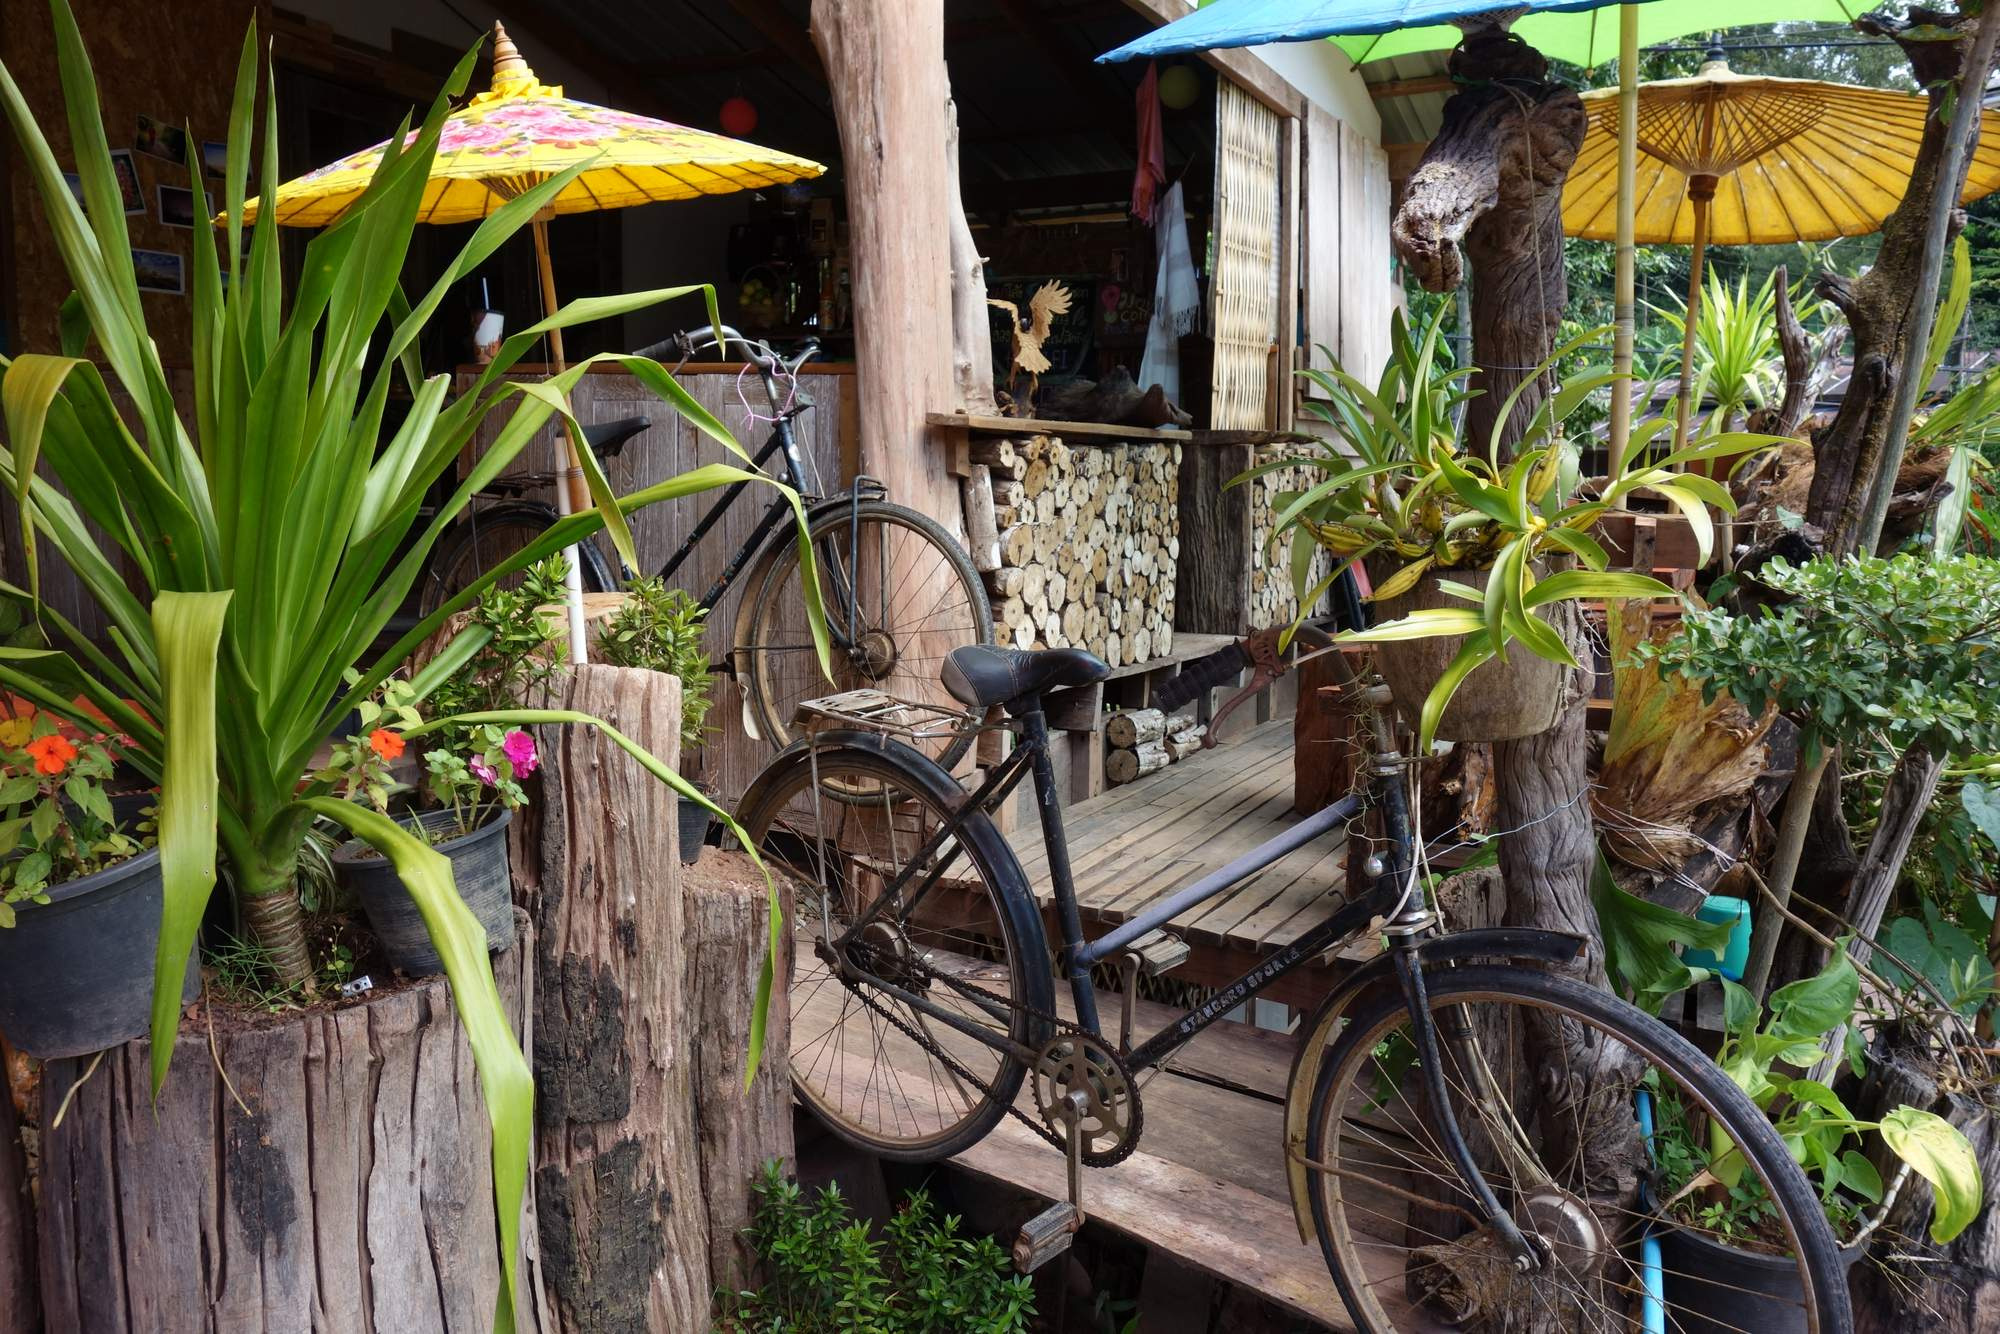 Photos from our North Thailand Cycling Holiday